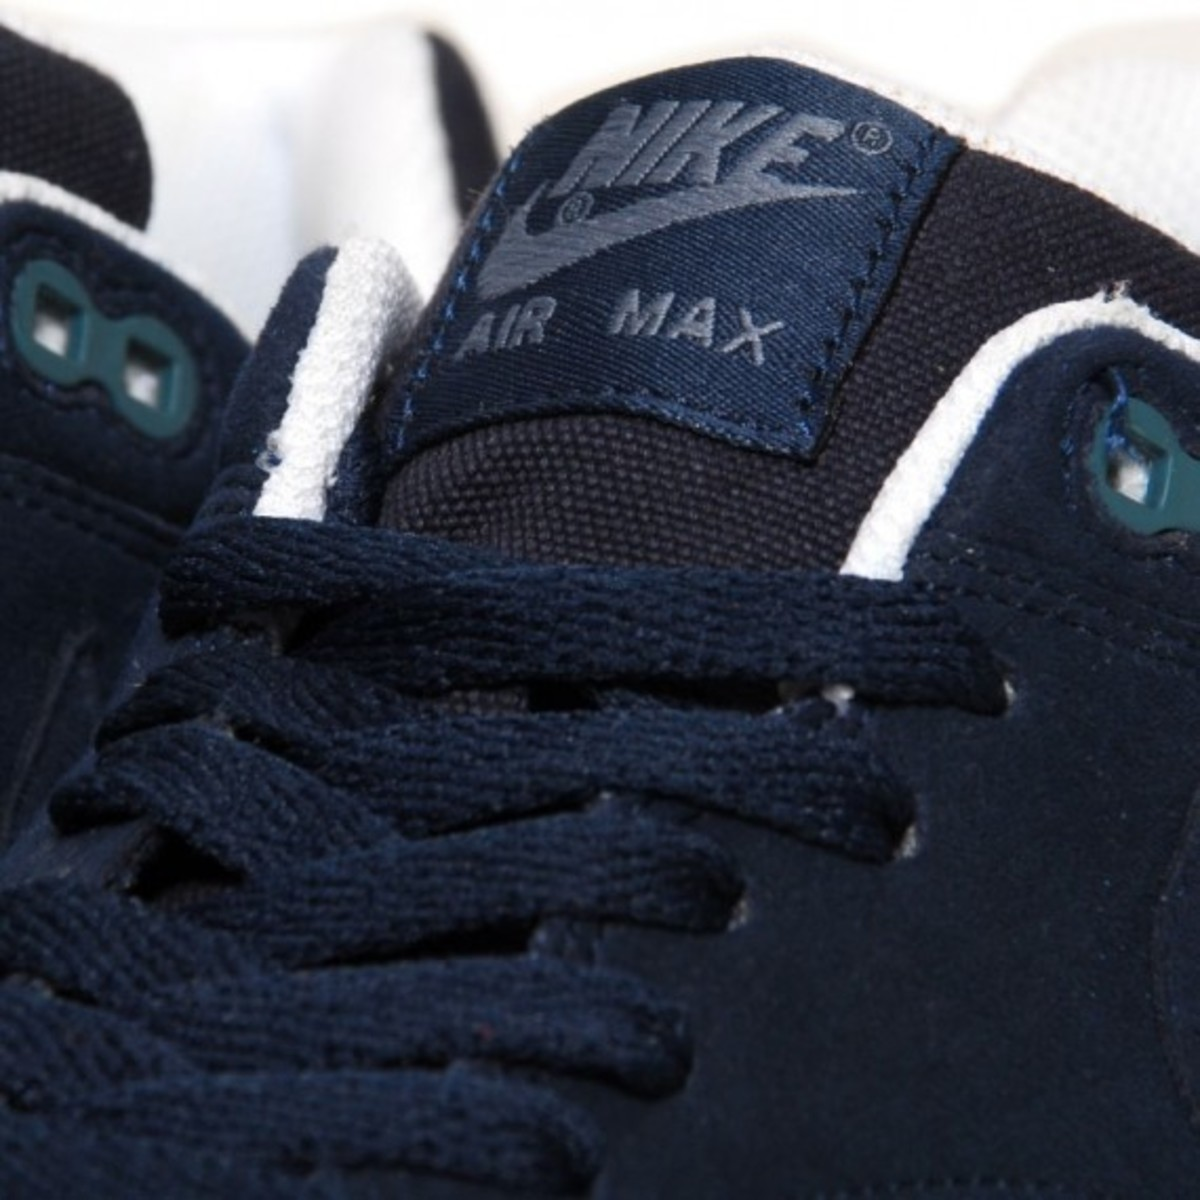 air-max-1-obsidian-slate-blue-02